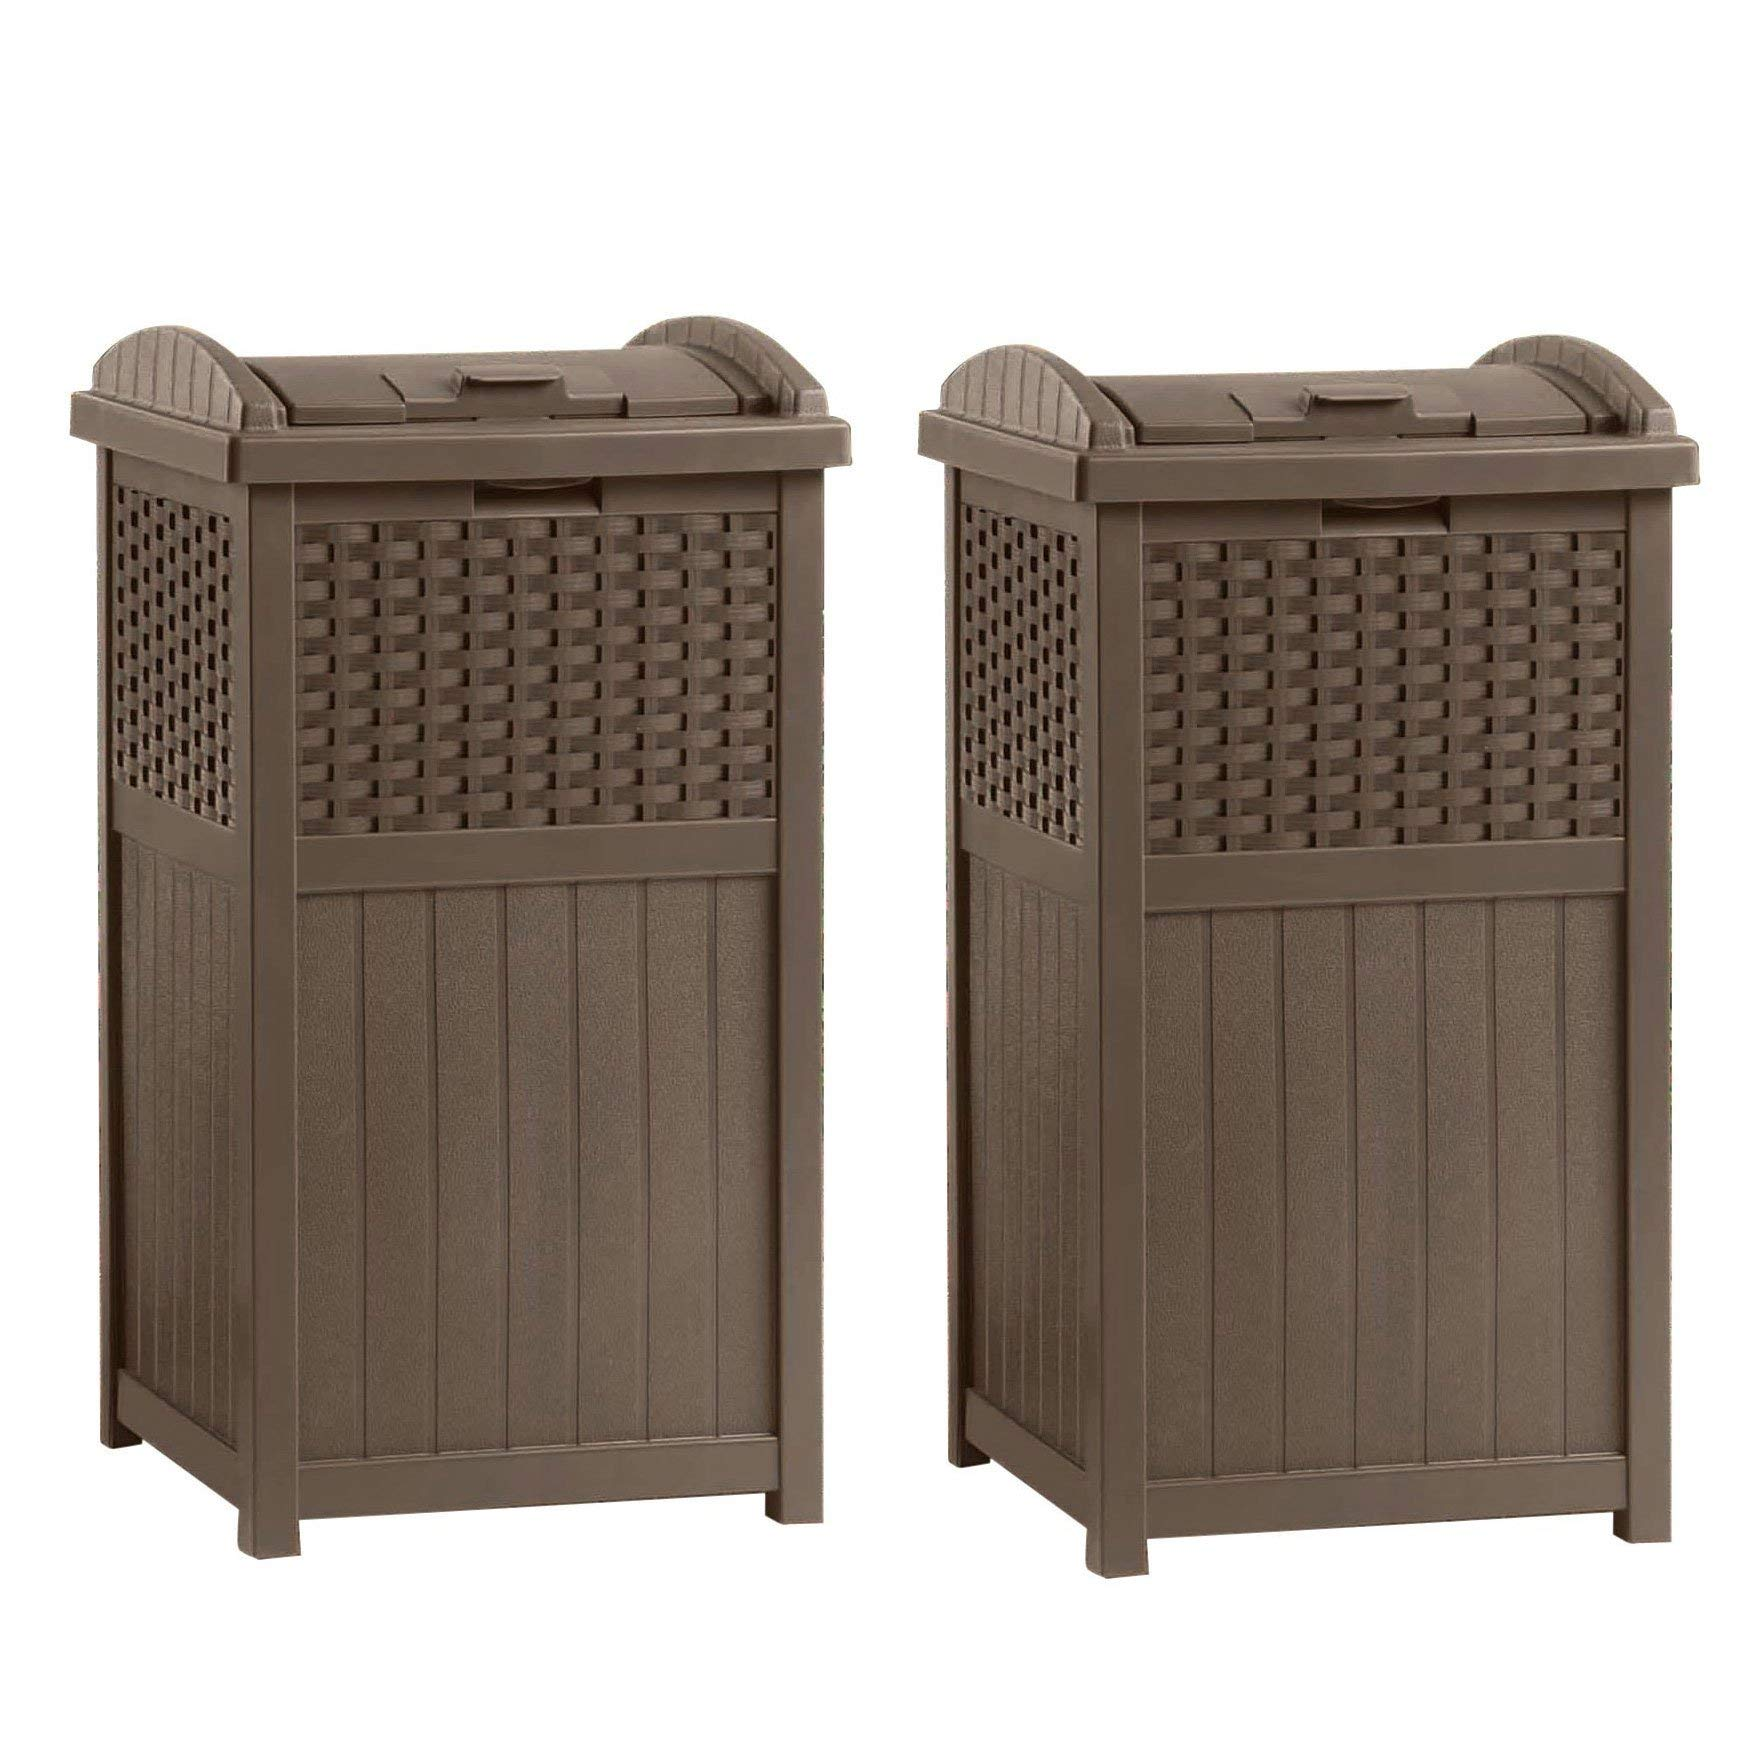 Suncast GHW1732 Home Outdoor Patio Resin Wicker Trash Can Hideaway (2 Pack) by Suncast